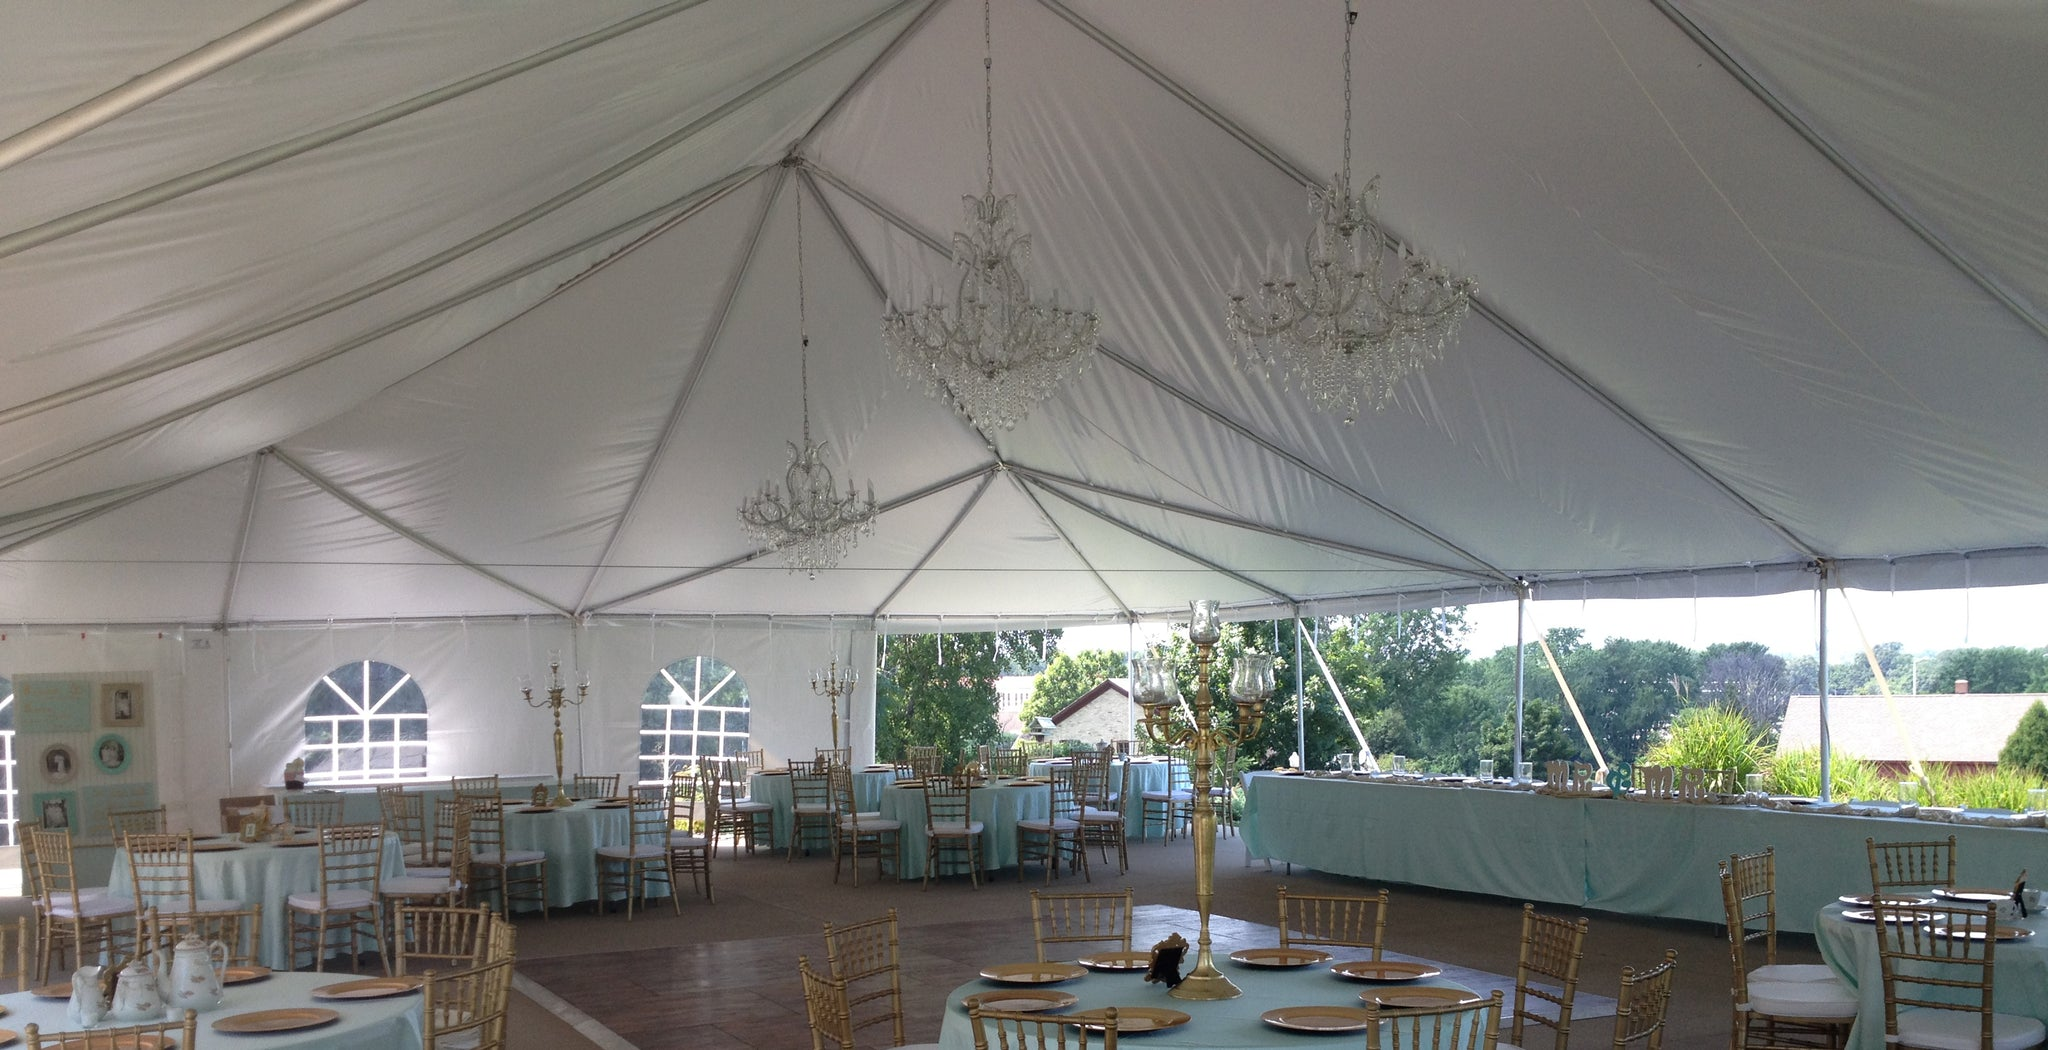 American Tent Amp Sidewall Commercial Tents And Sidewalls